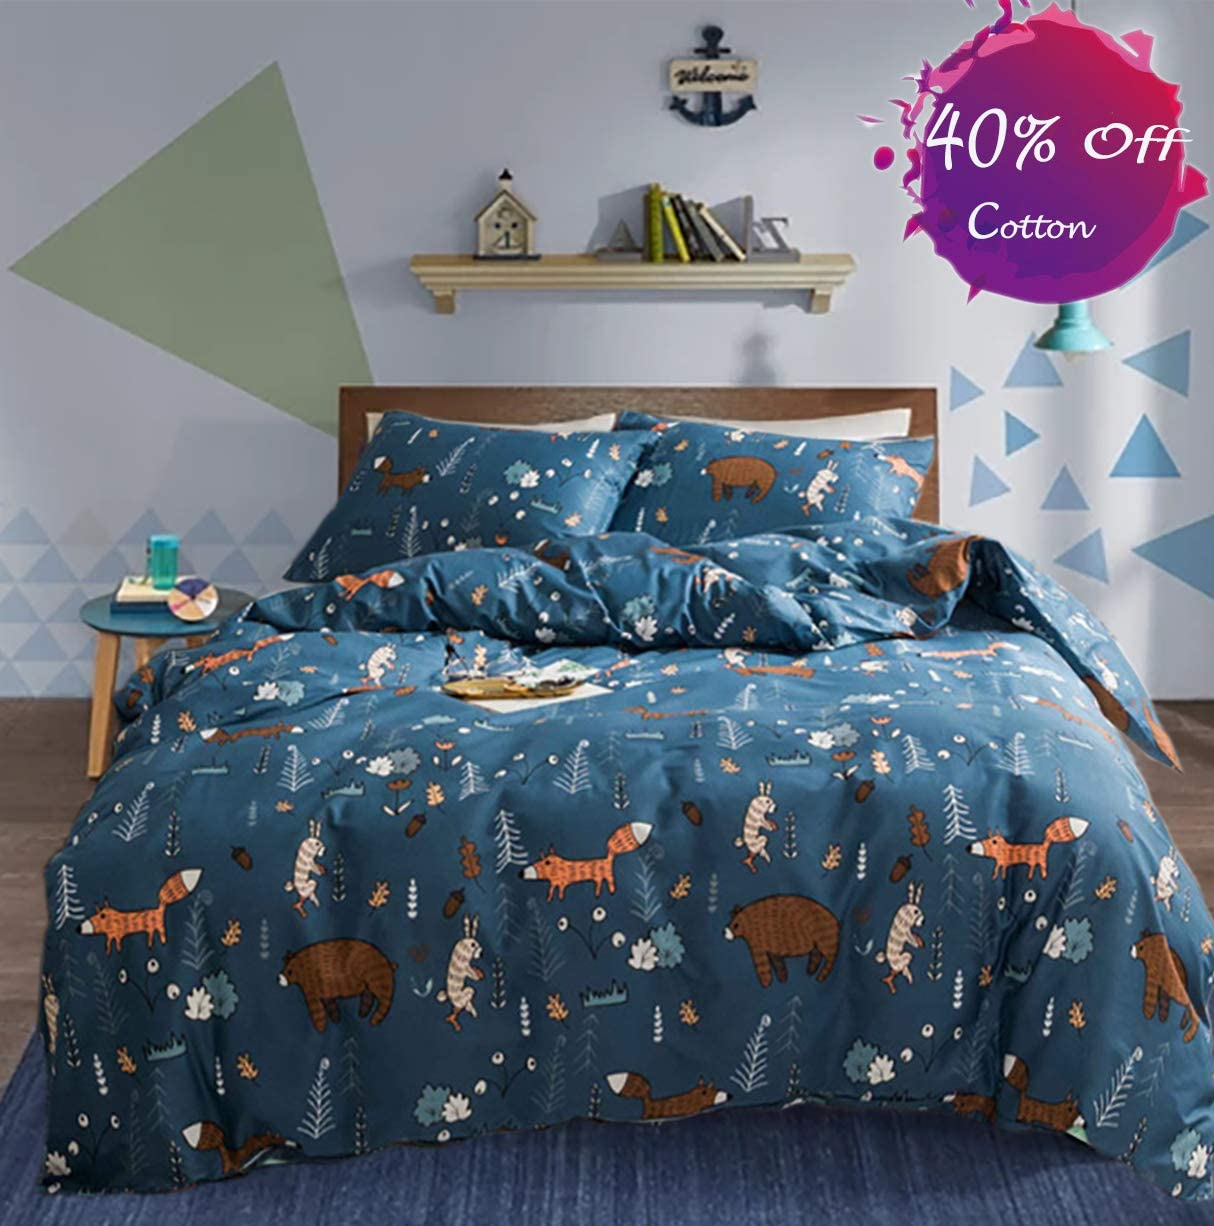 karever Blue Bear Duvet Cover Set Twin Cotton Cartoon Ainmal Forest Bedding Set Bear Fox Rabbit Pattern Printed on Navy Blue Comforter Cover Set for Little Boy Girl